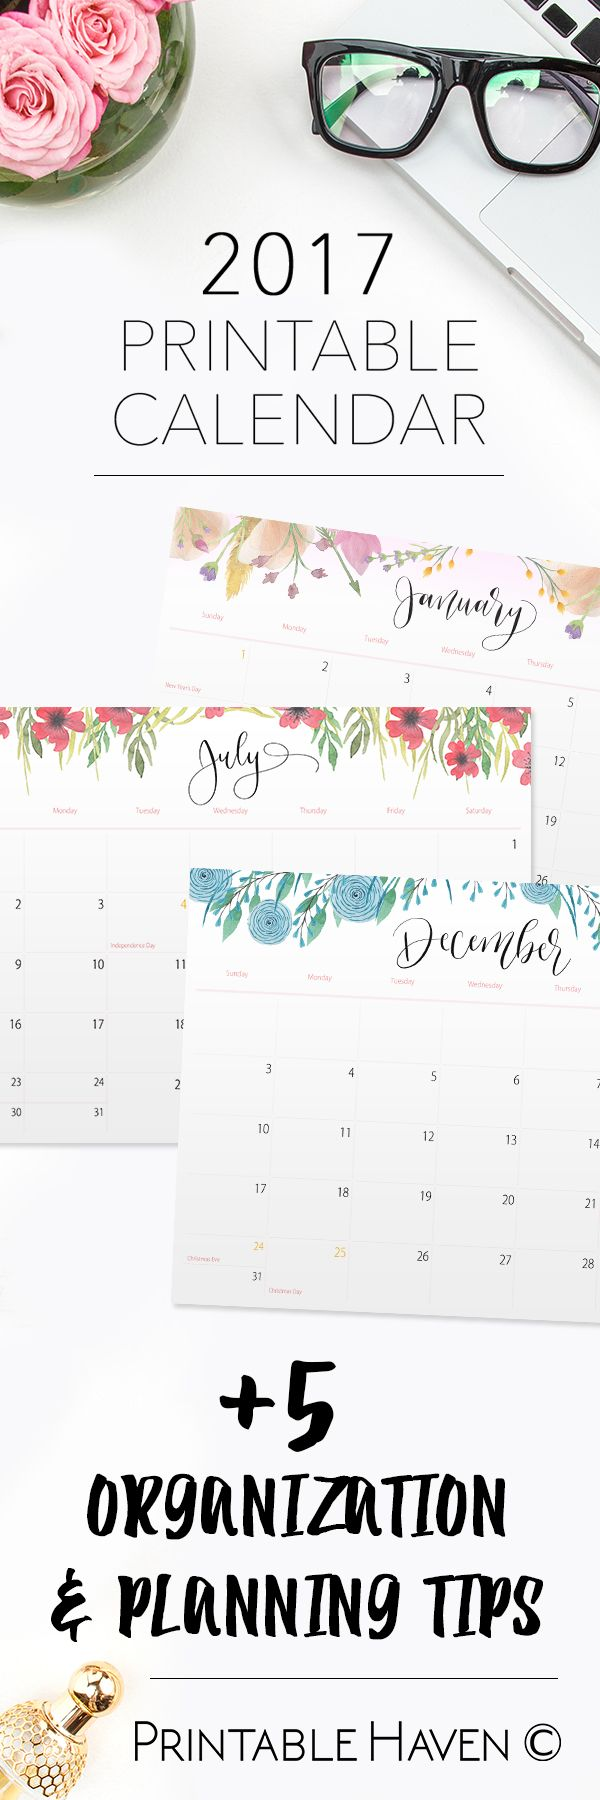 2017 and 2018 Printable Wall, Desktop or Binder Calendars | Organizing